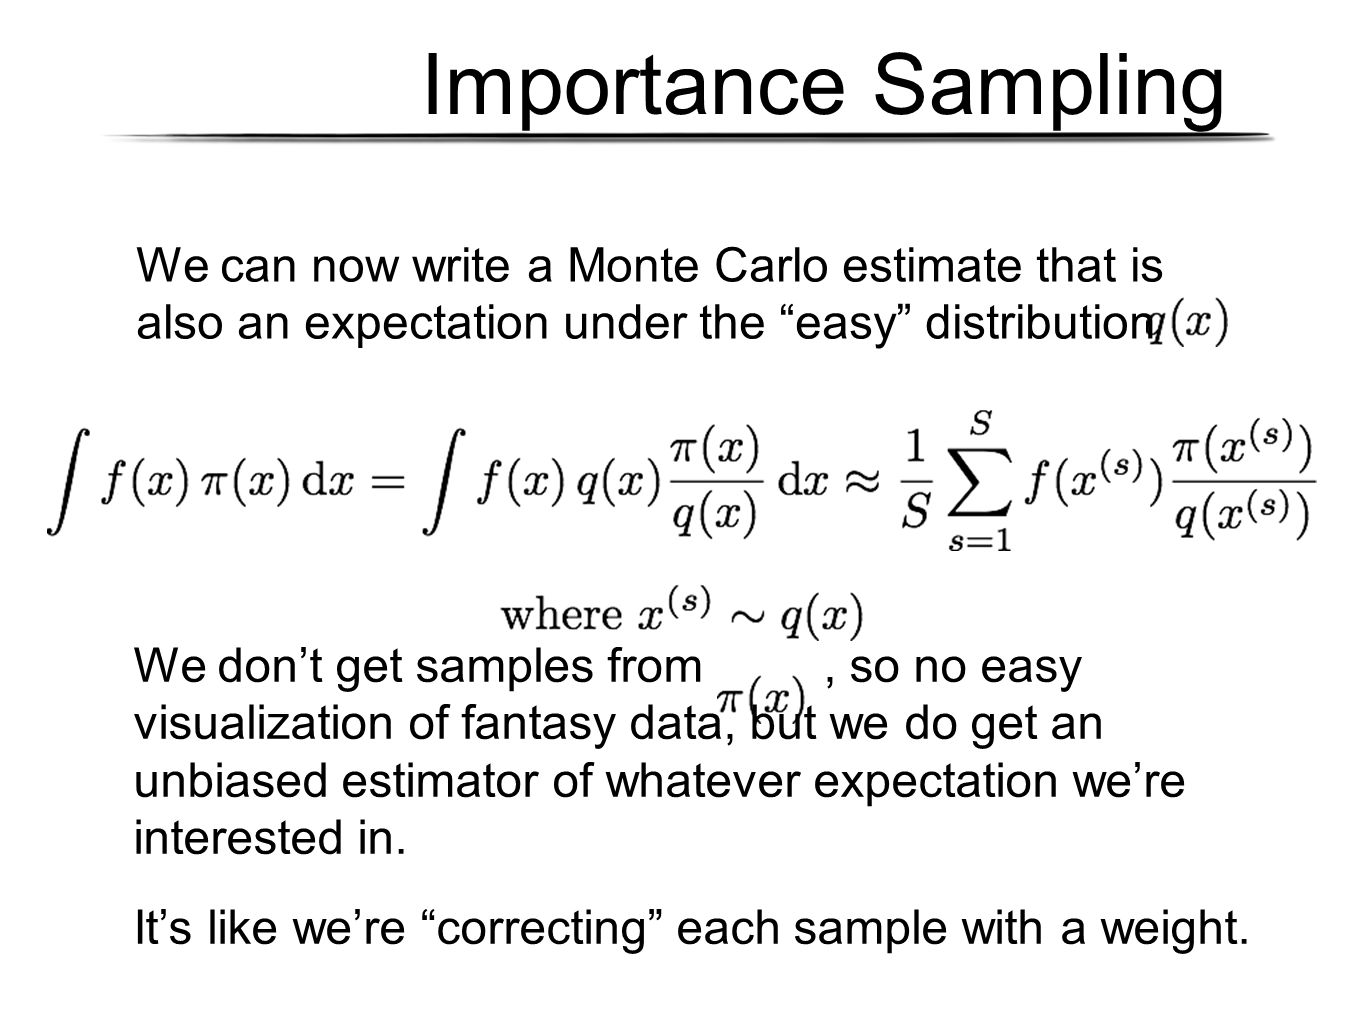 Importance Sampling We can now write a Monte Carlo estimate that is also an expectation under the easy distribution We don't get samples from, so no easy visualization of fantasy data, but we do get an unbiased estimator of whatever expectation we're interested in.